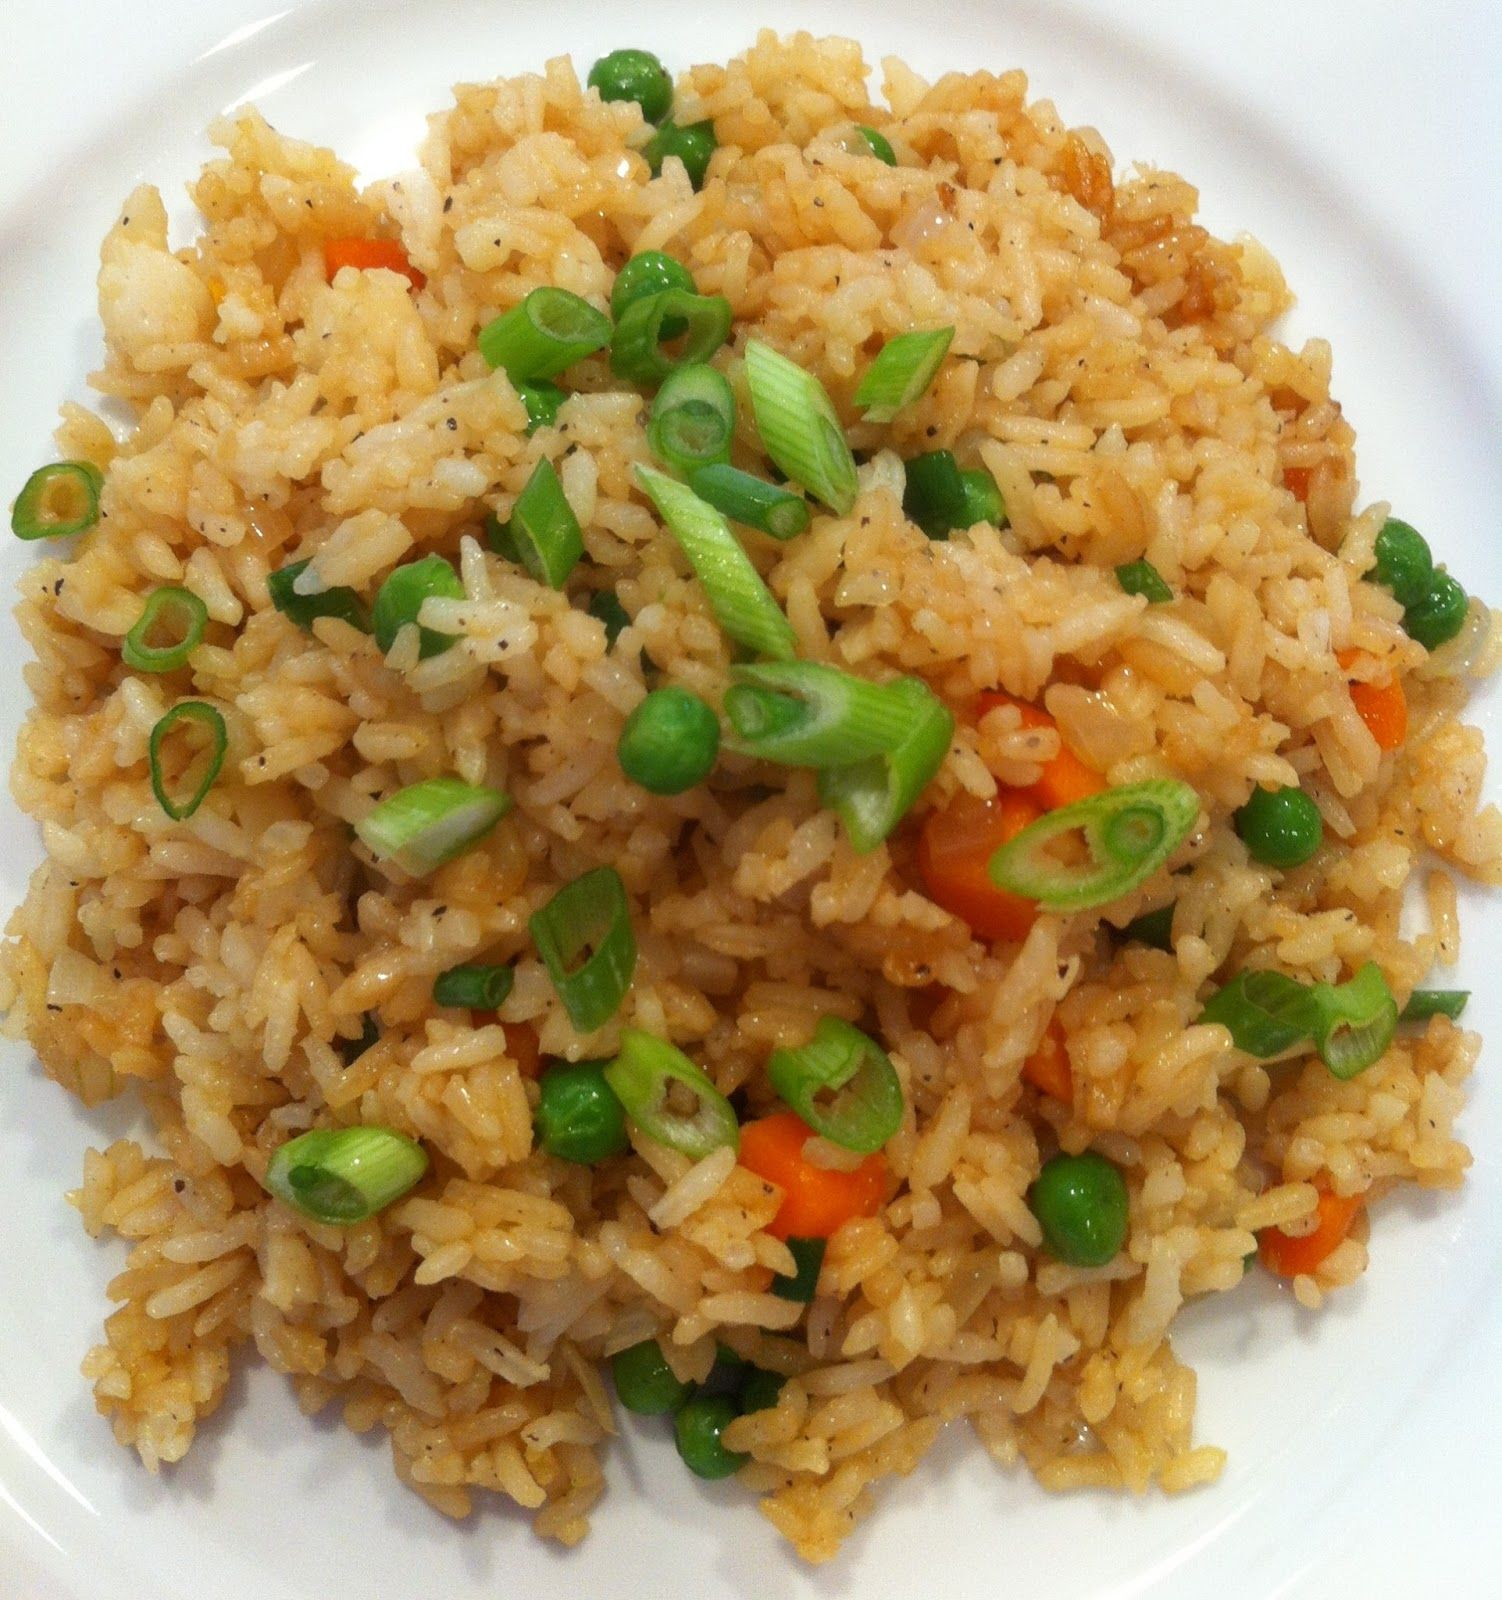 Hibachi Style Fried Rice Makes 2 Servings Recipe Can Easily Be Doubled Or Tripled Printer